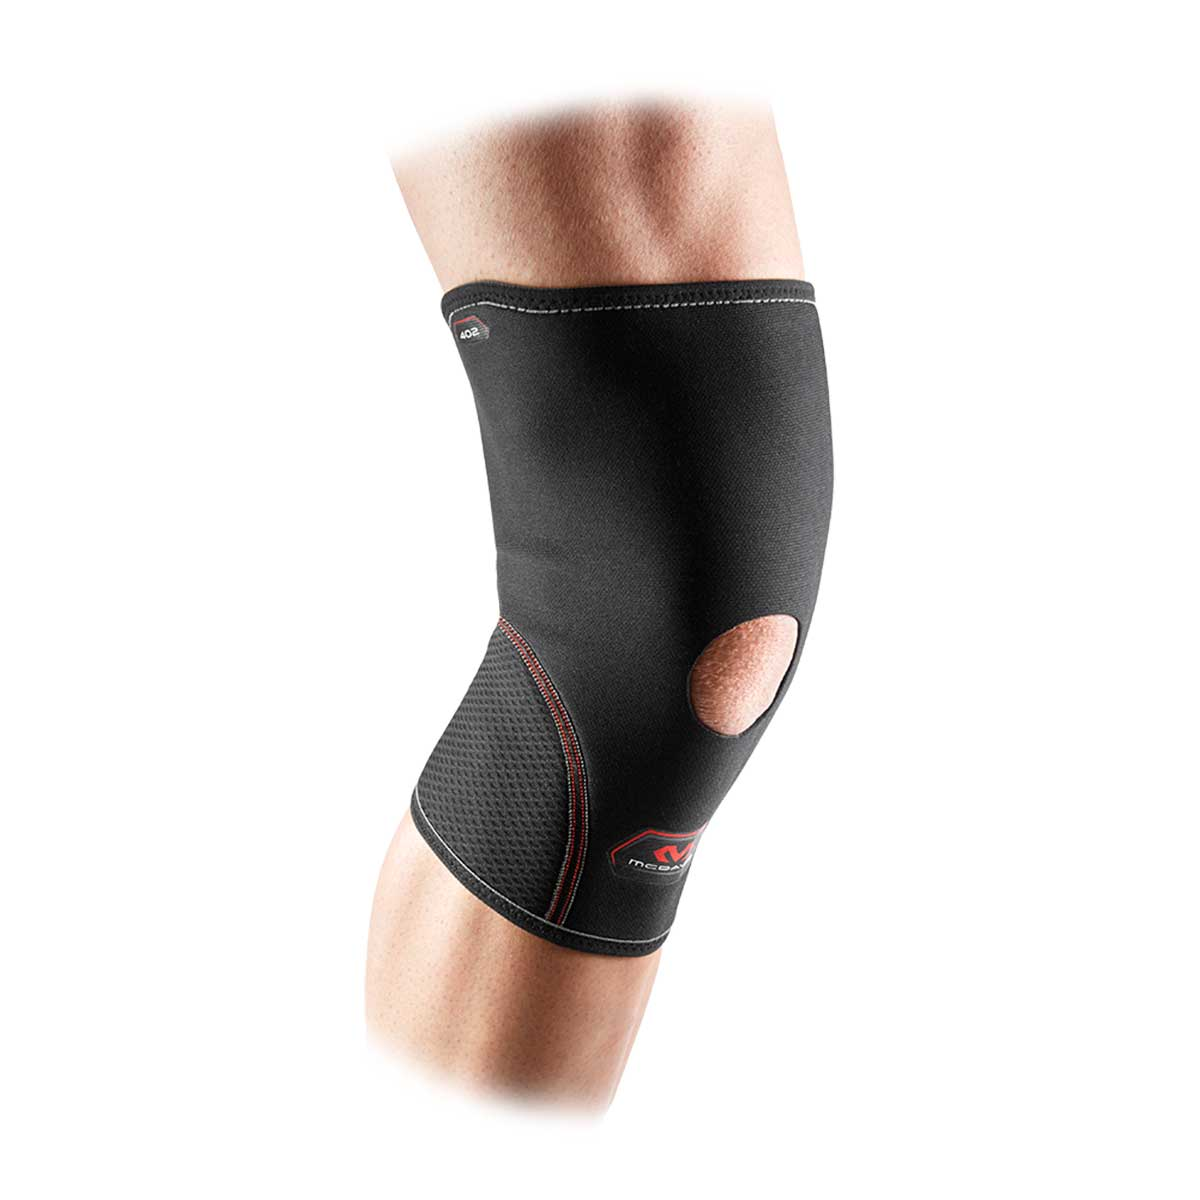 de0f94097e Buy Mcdavid Knee Support Open Patella online at lowest price in India.